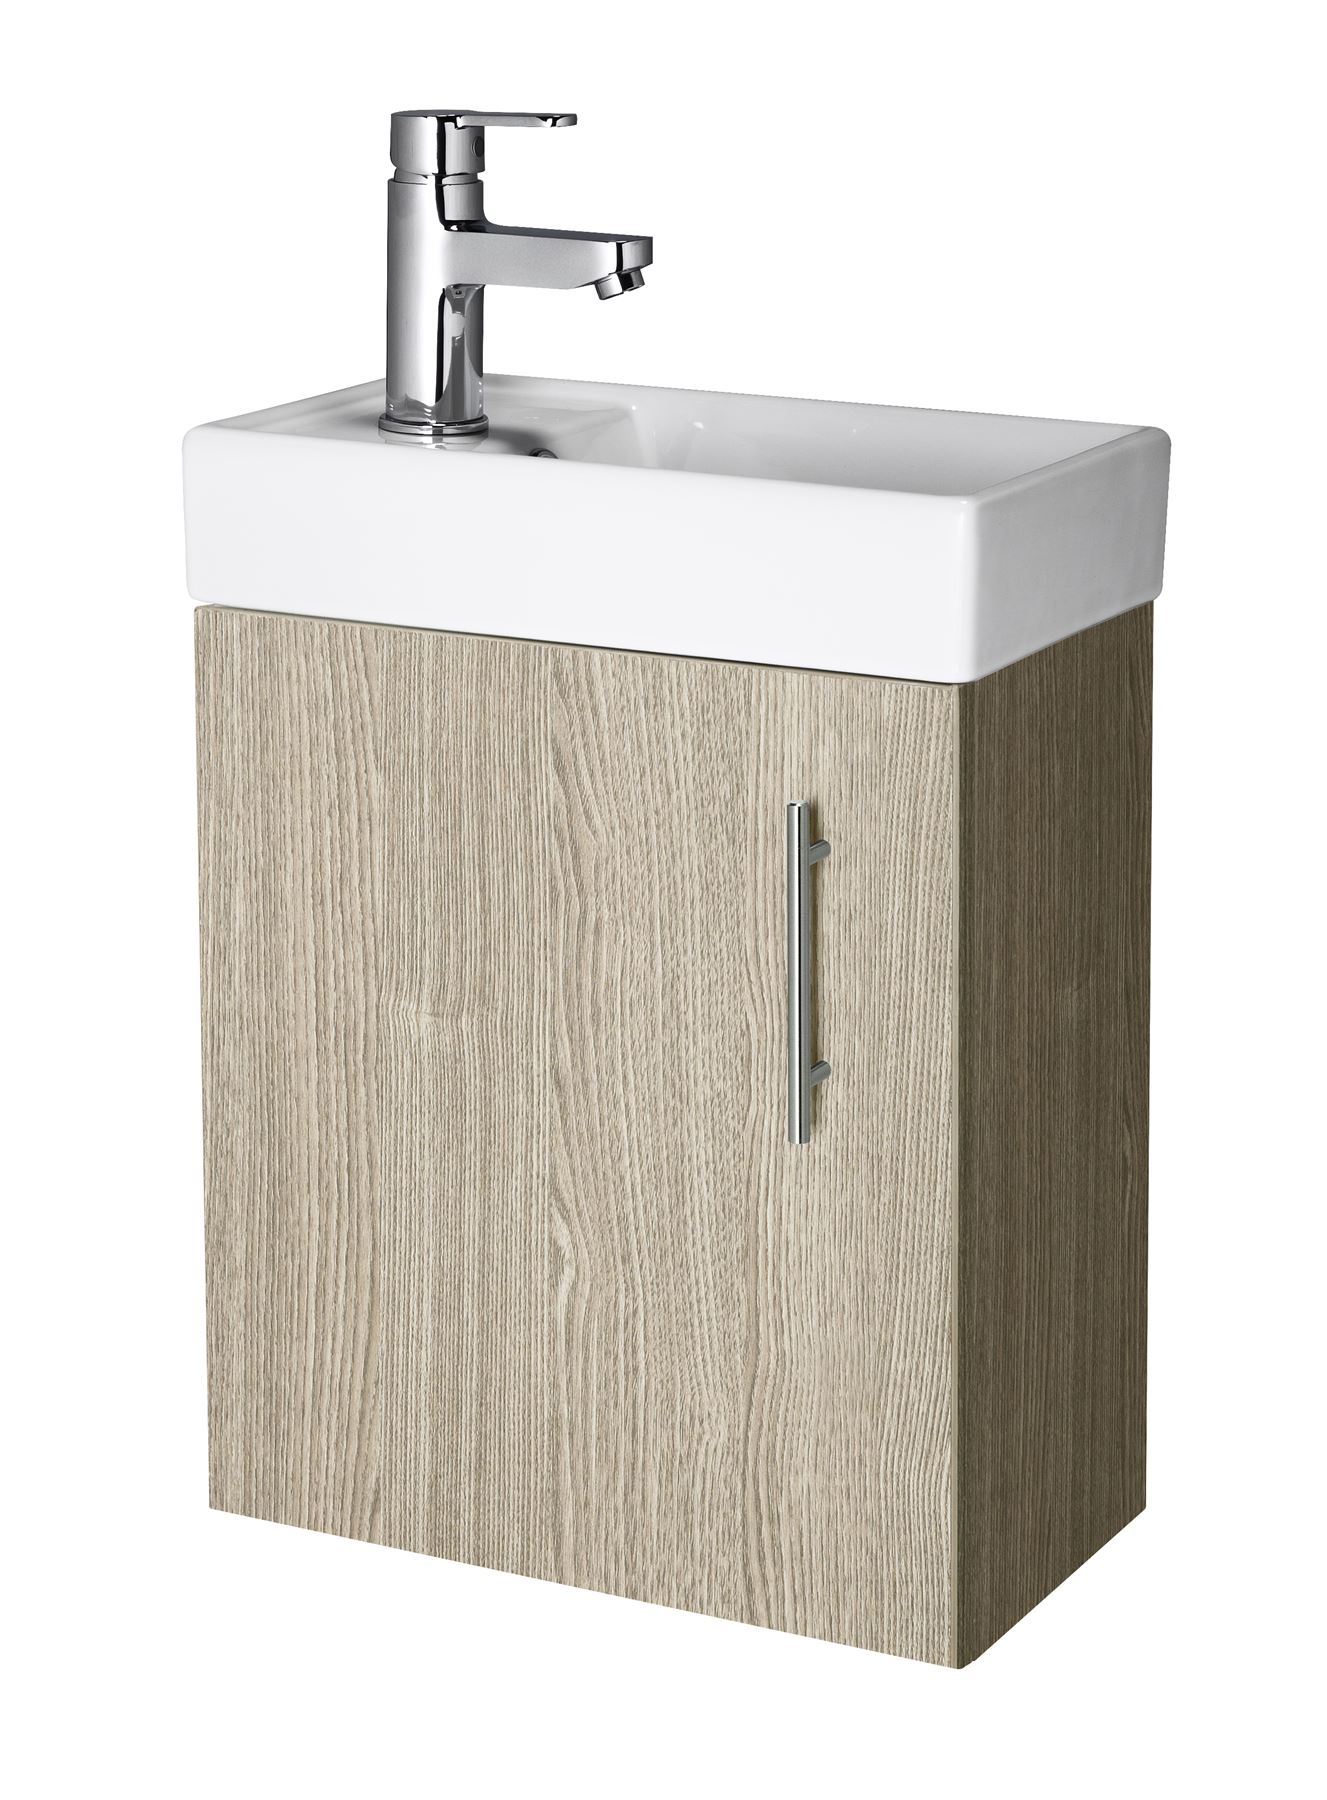 400mm Modern Bathroom Cloakroom Vanity Unit Basin Sink